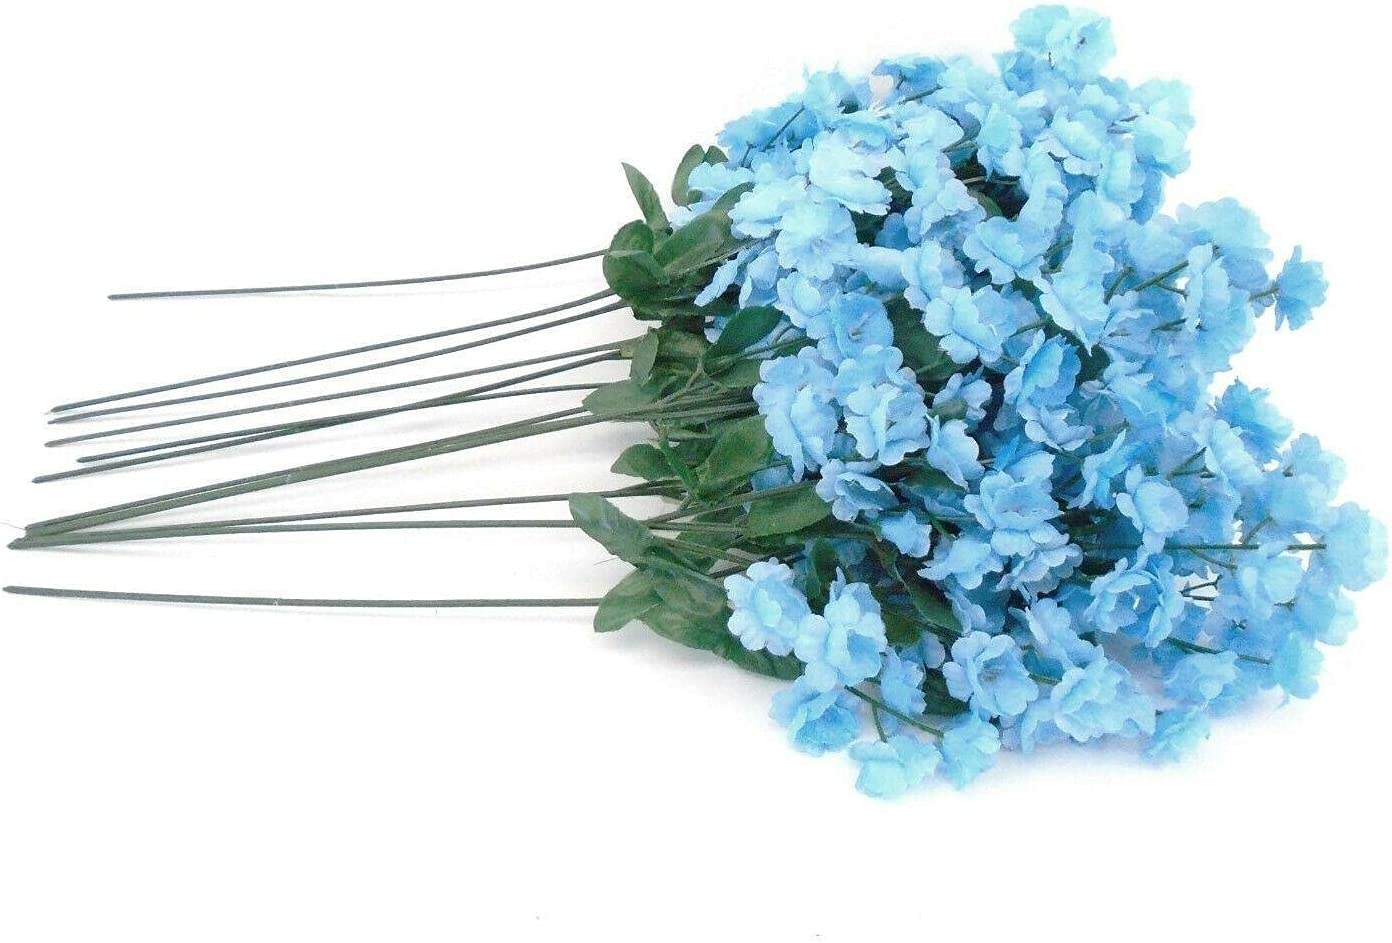 12 s Blue Discount Max 65% OFF mail order Gypsophila Filler Decora Artificial 15